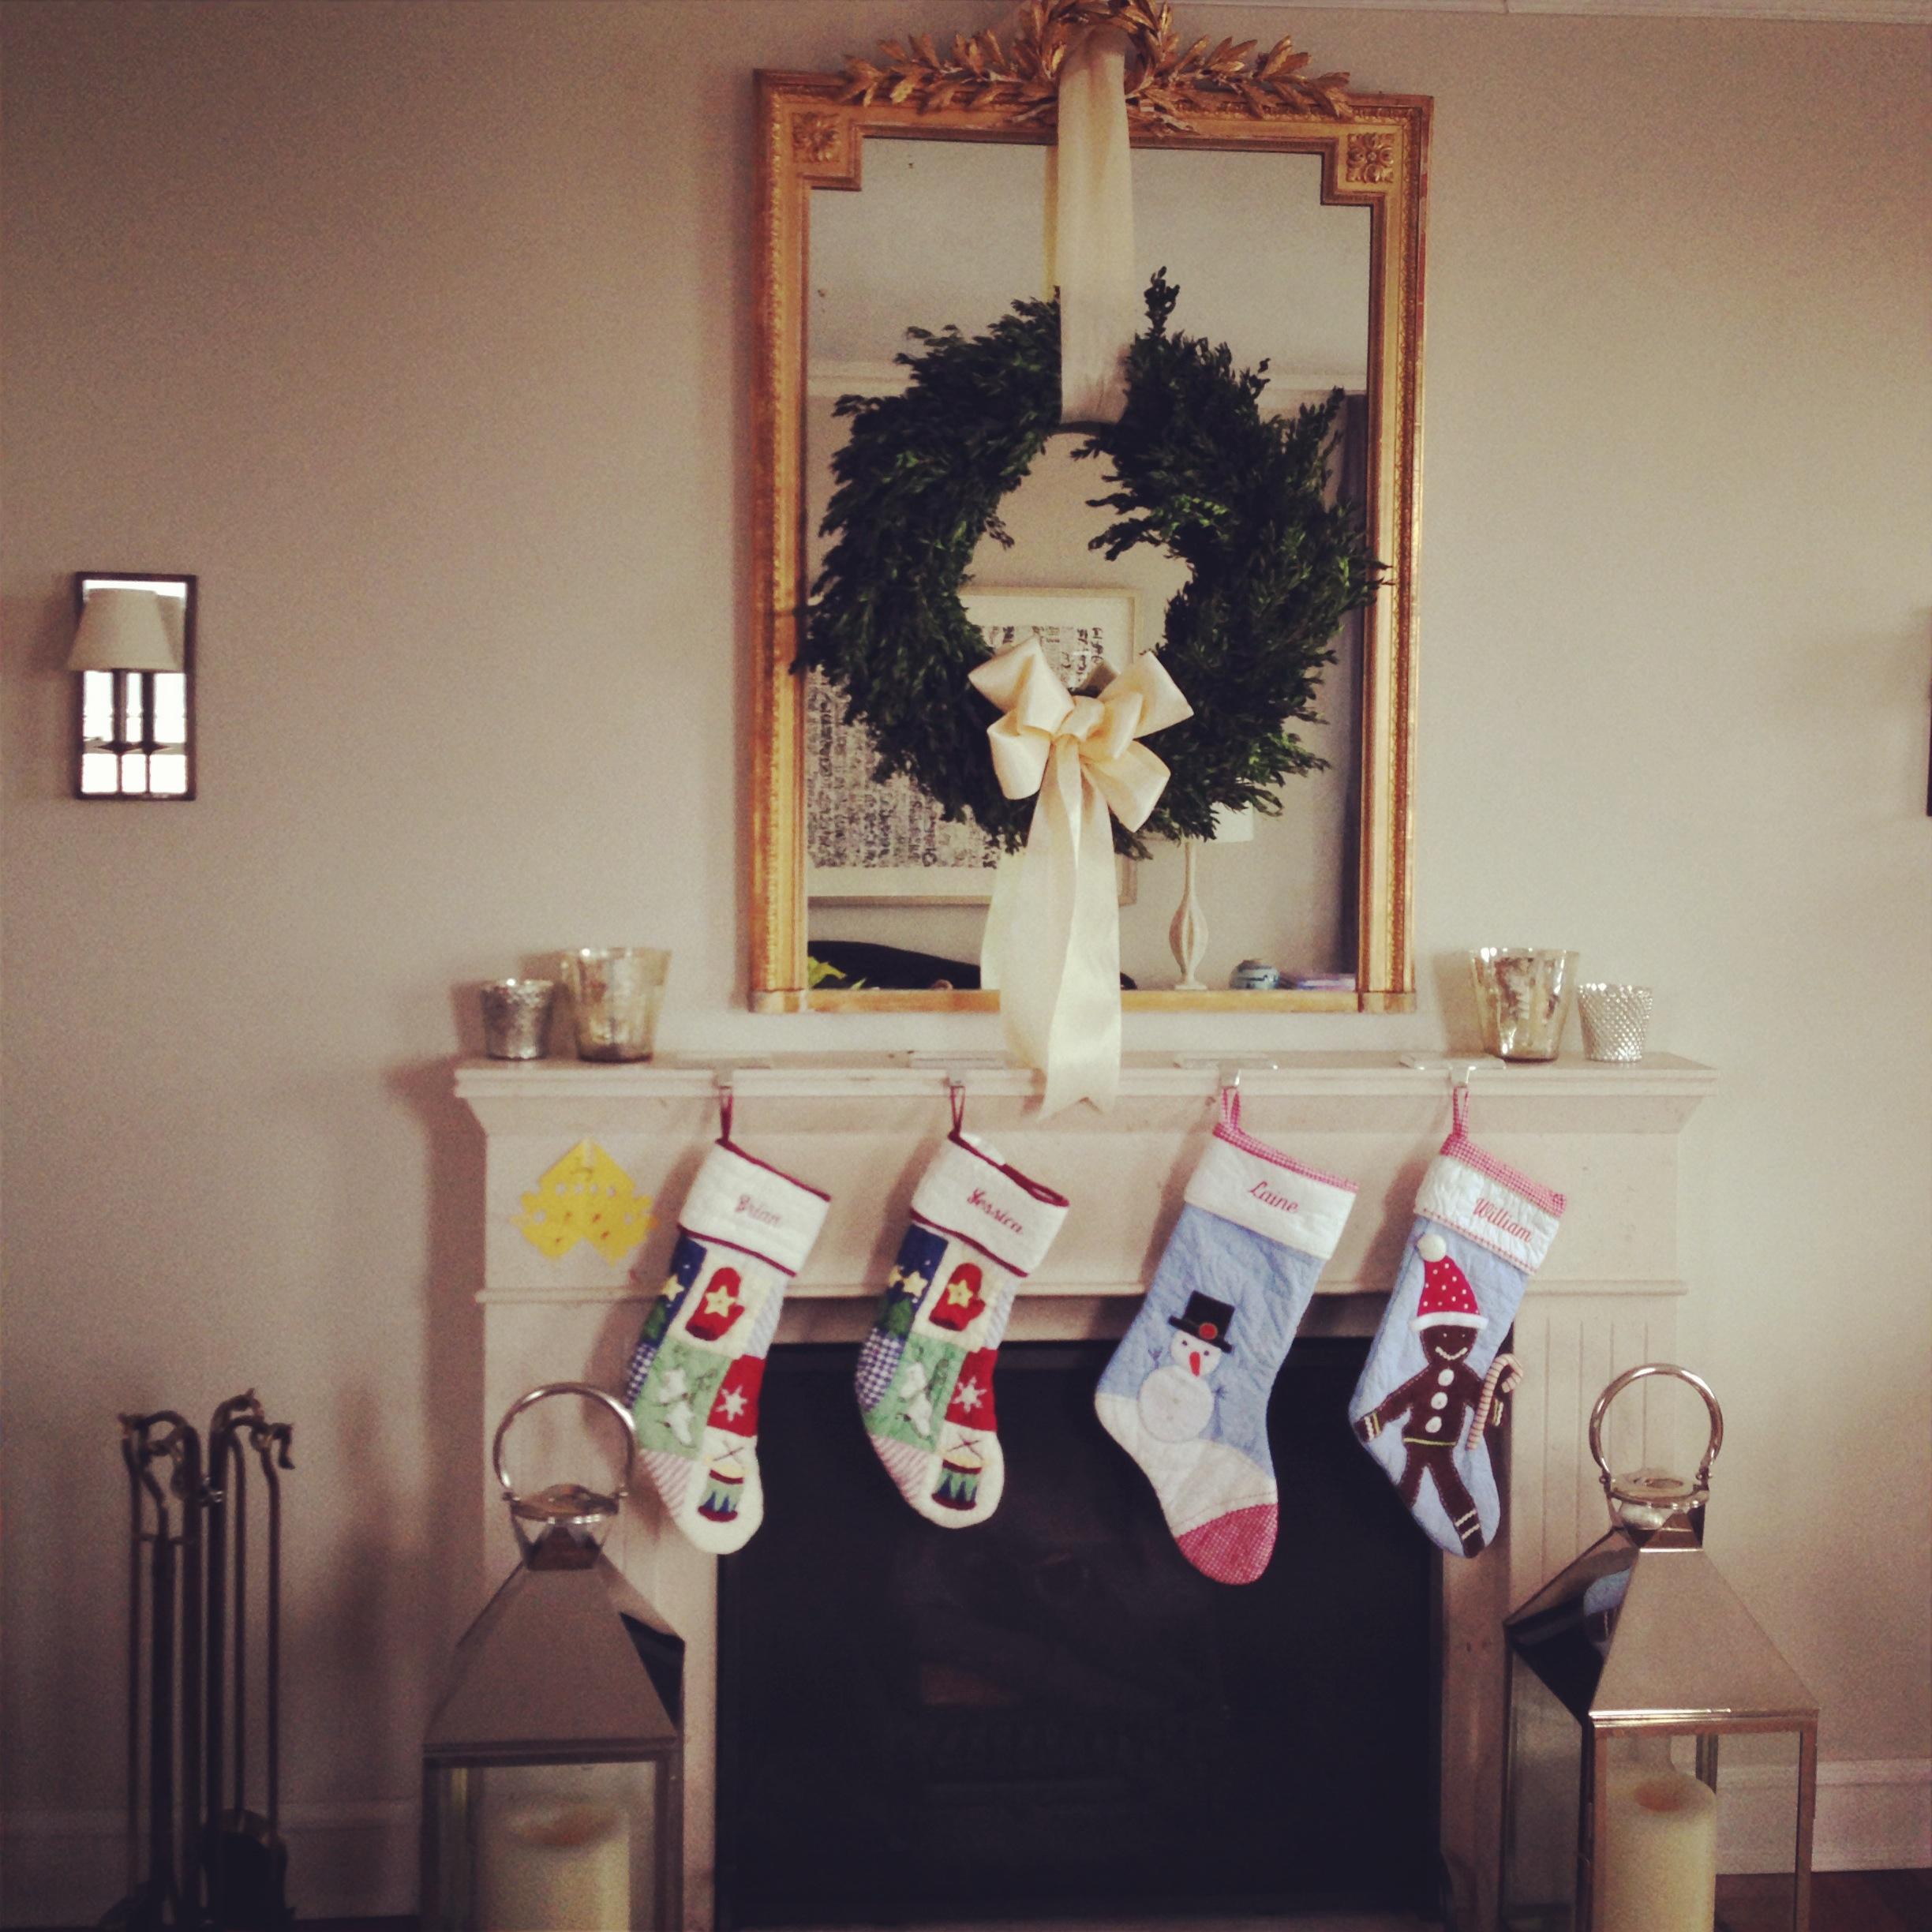 The Holidays at Home